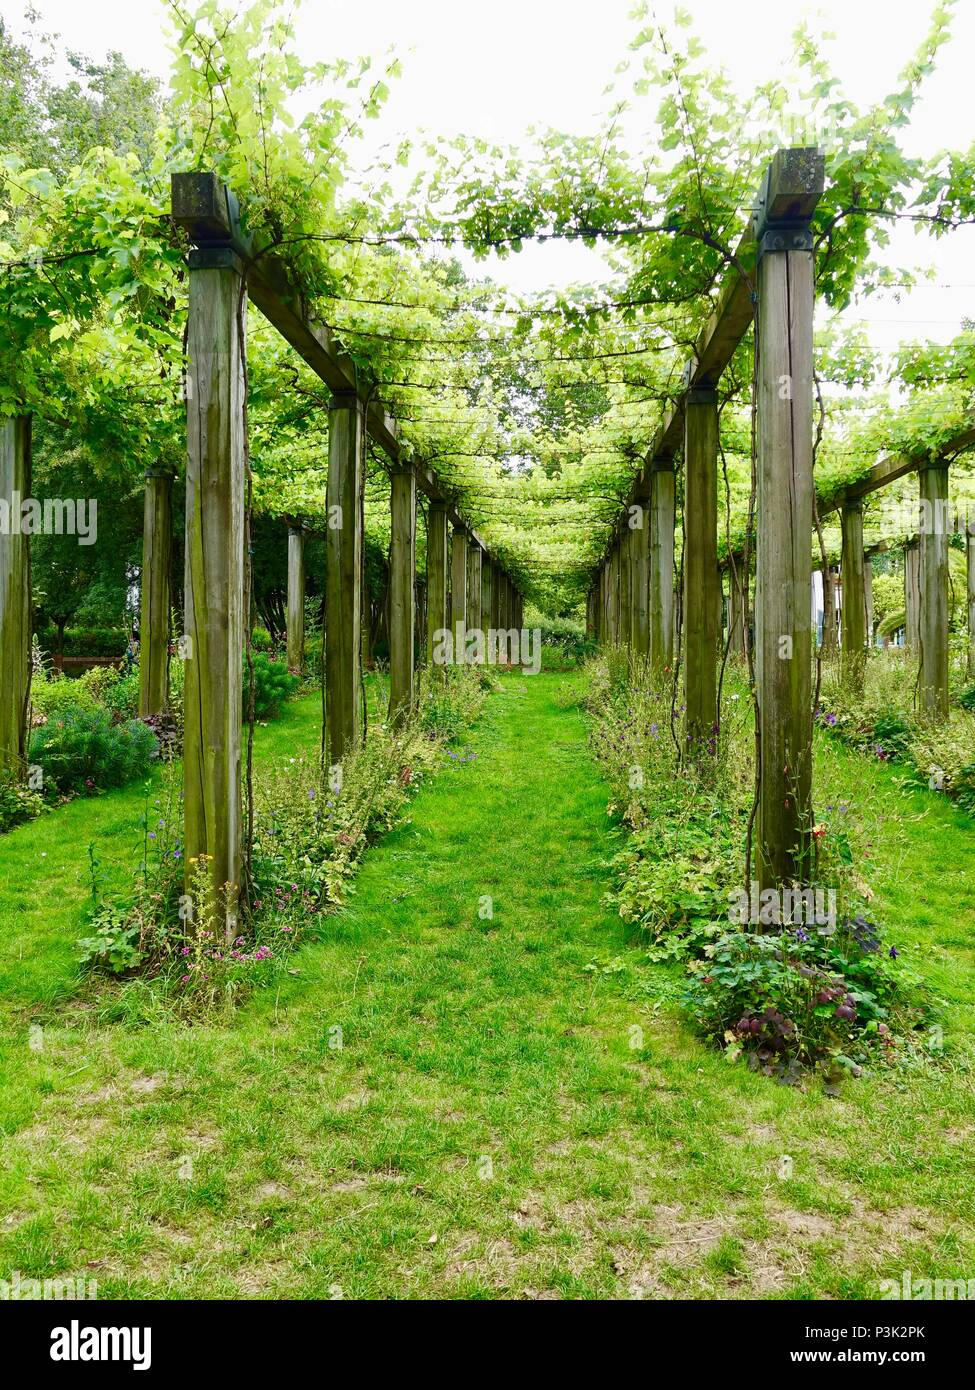 Very leafy vines growing on a high trellis in June, Bercy Park, Paris, France - Stock Image